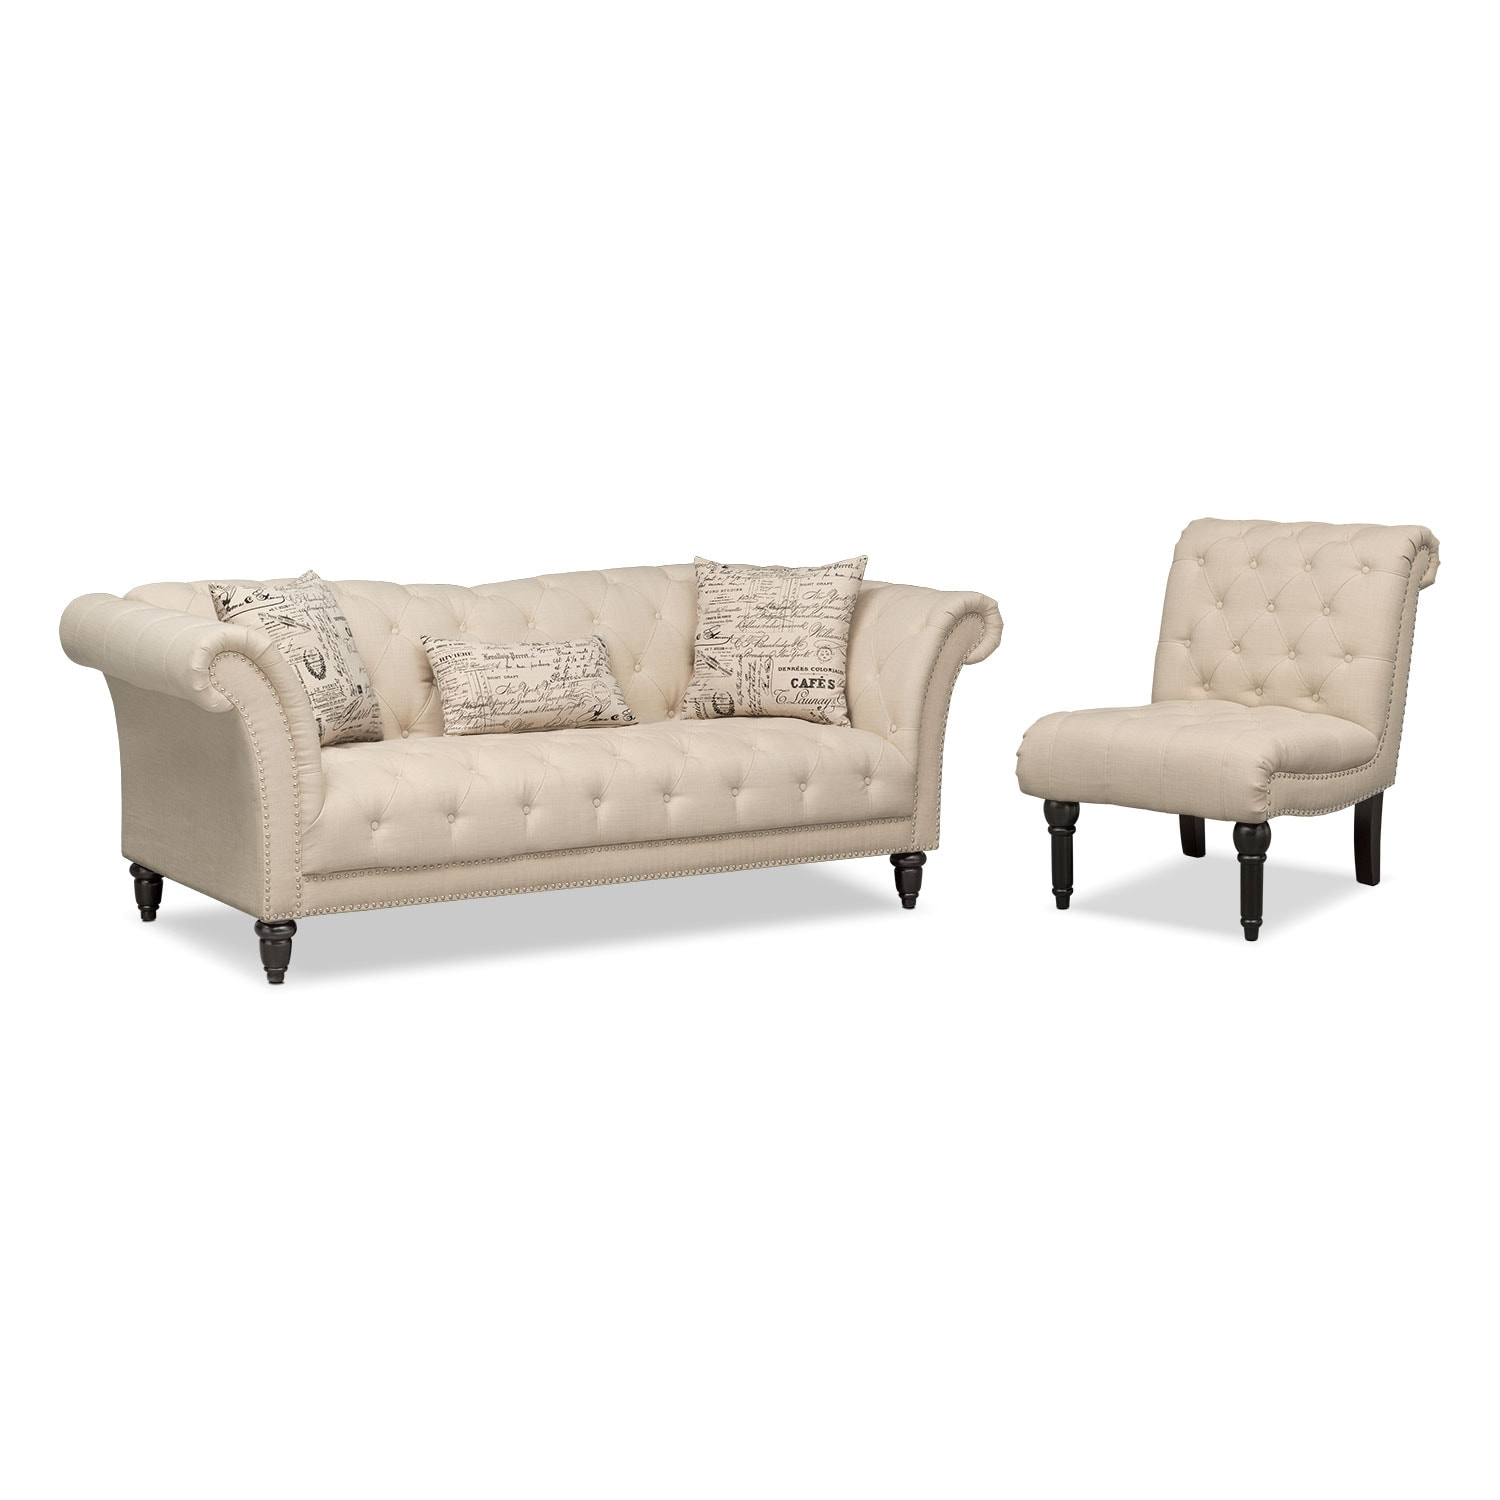 Marisol Sofa and Armless Chair Beige